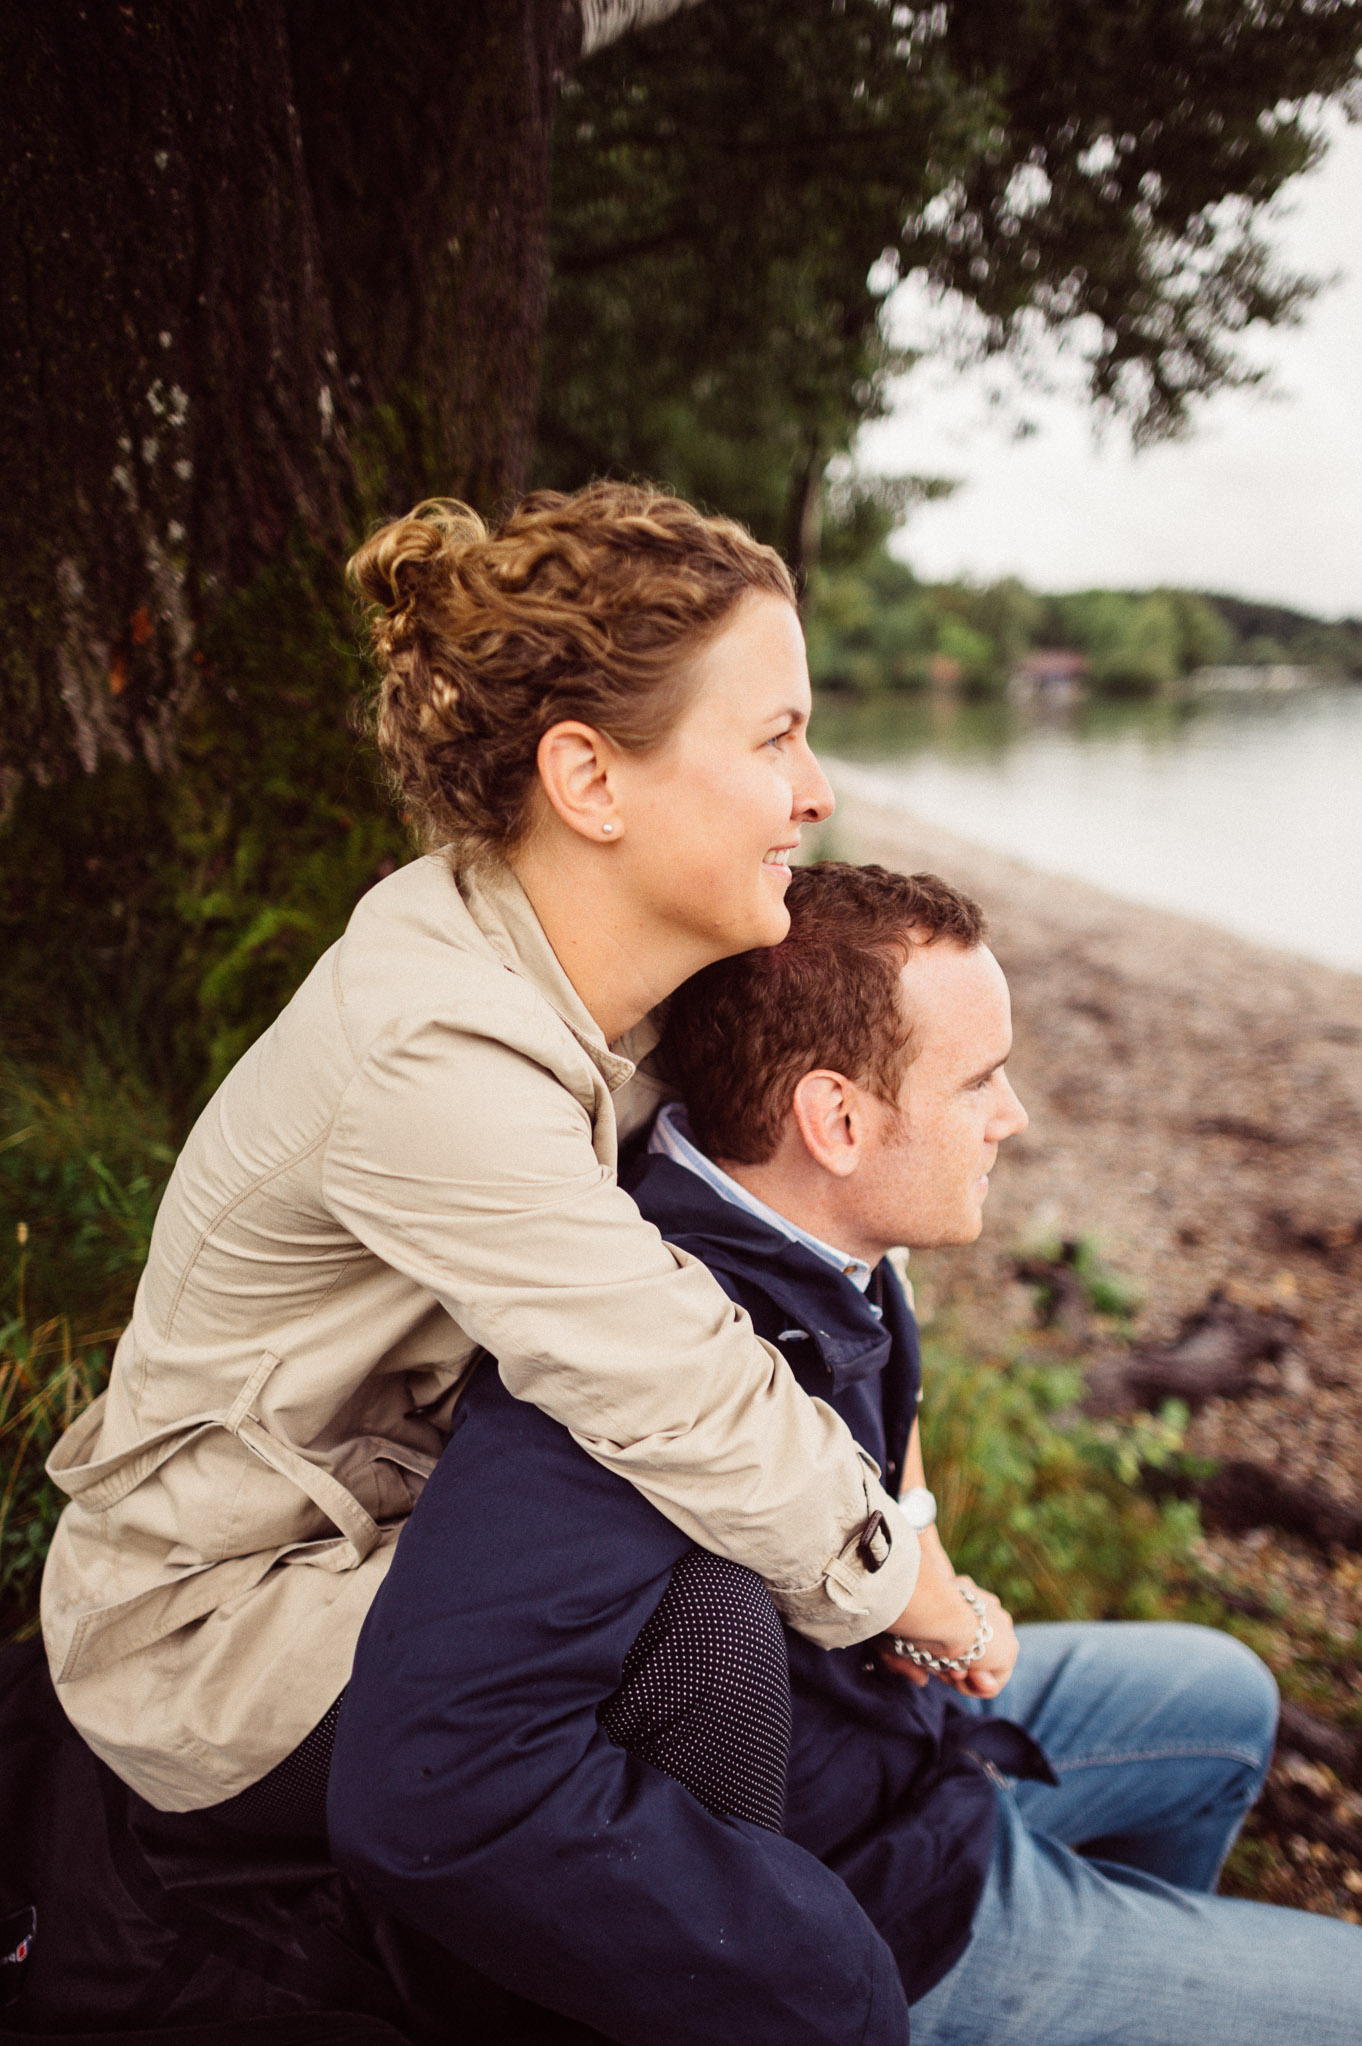 hochzeitsfotograf_andreas_jacob_engagement_chiemsee_058